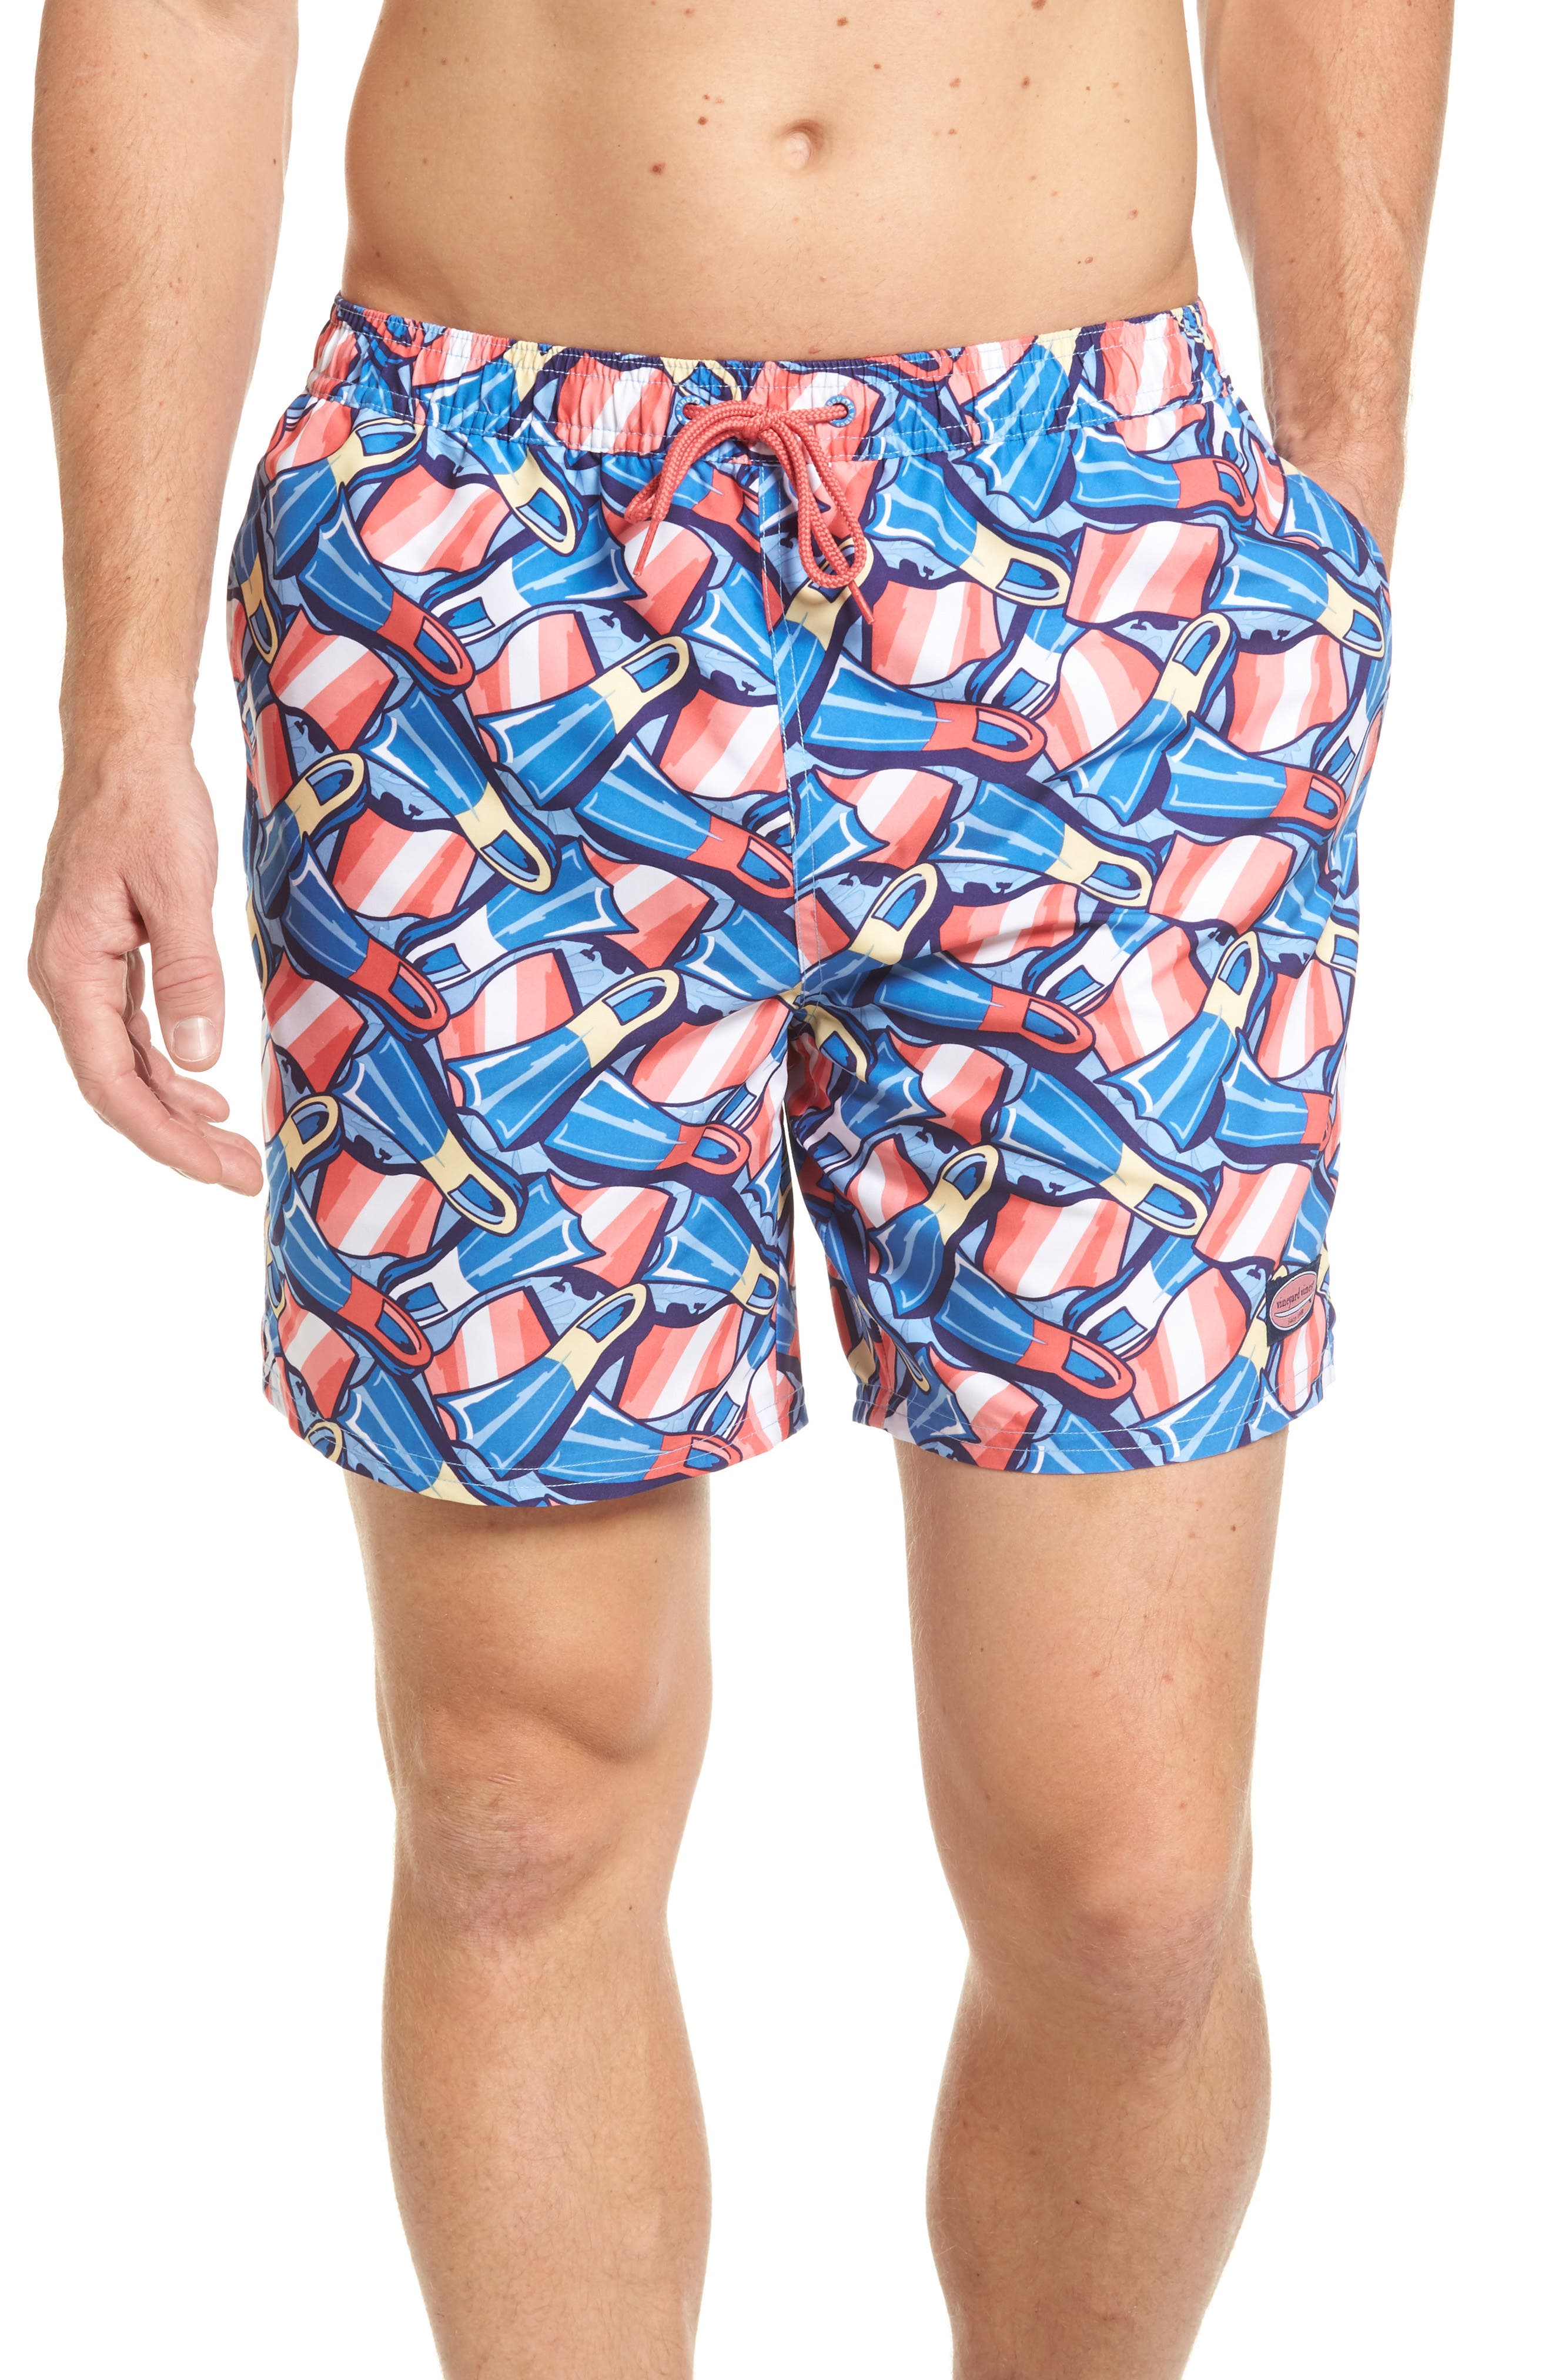 Flippers Chappy Swim Trunks,                             Main thumbnail 1, color,                             437